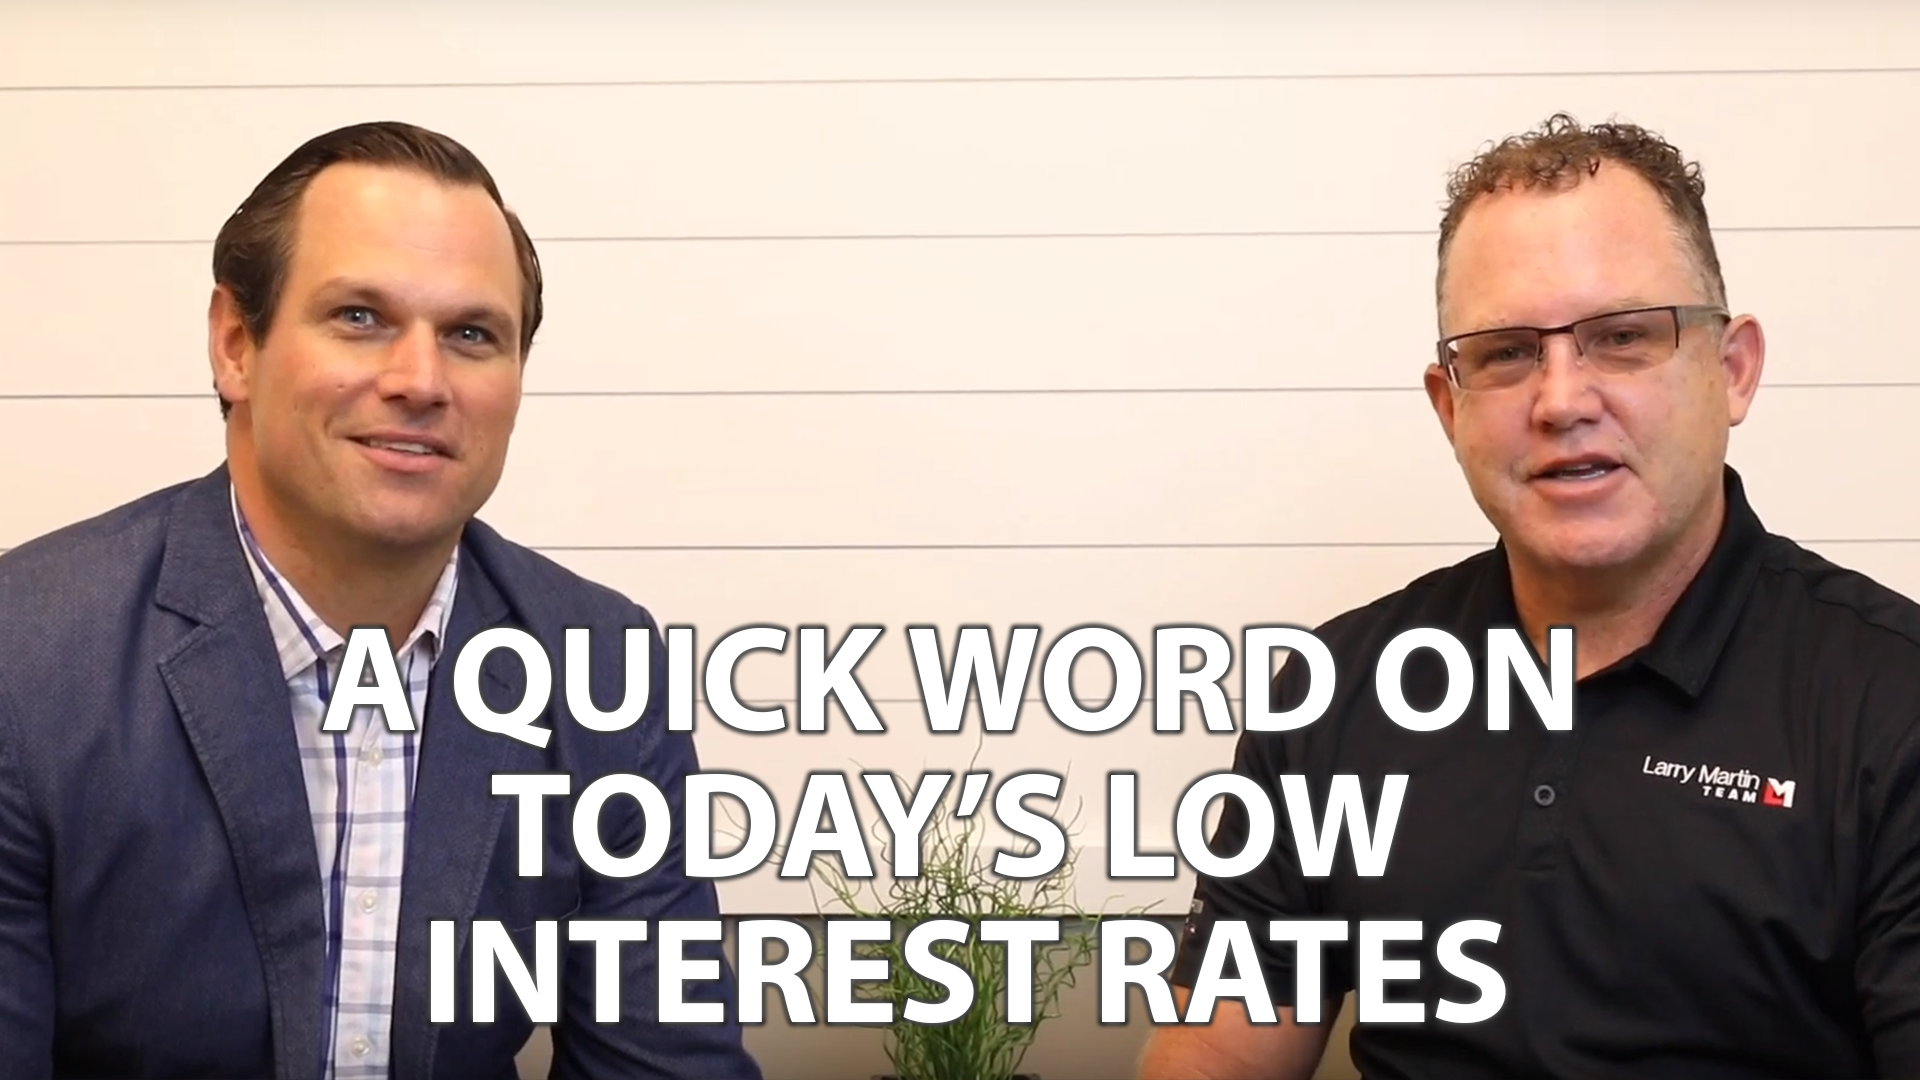 What Current Low Interest Rates Mean for You